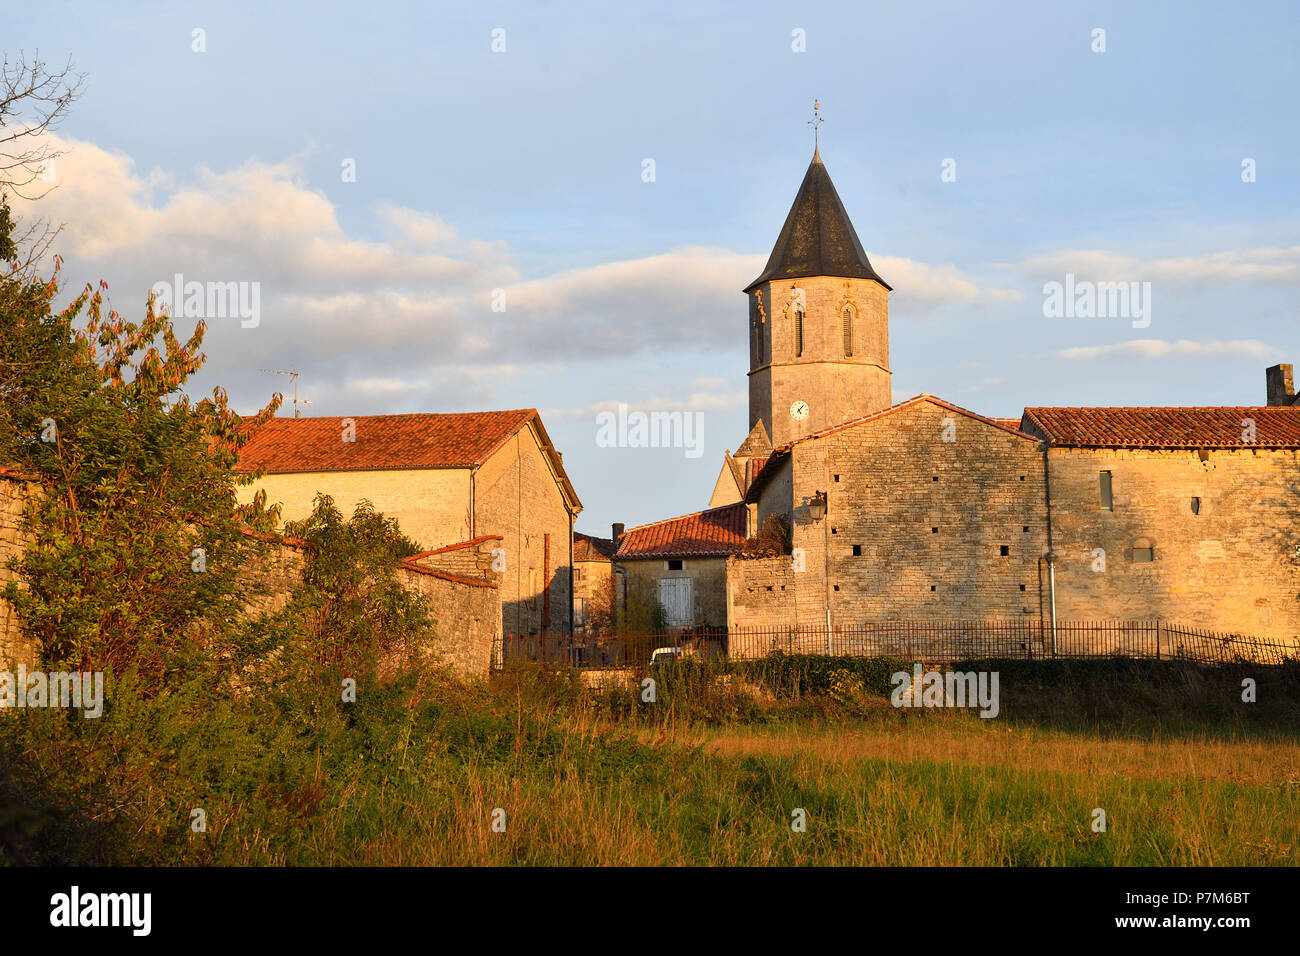 France, Charente, Tusson, on the road of Santiago de Compostela, the village - Stock Image